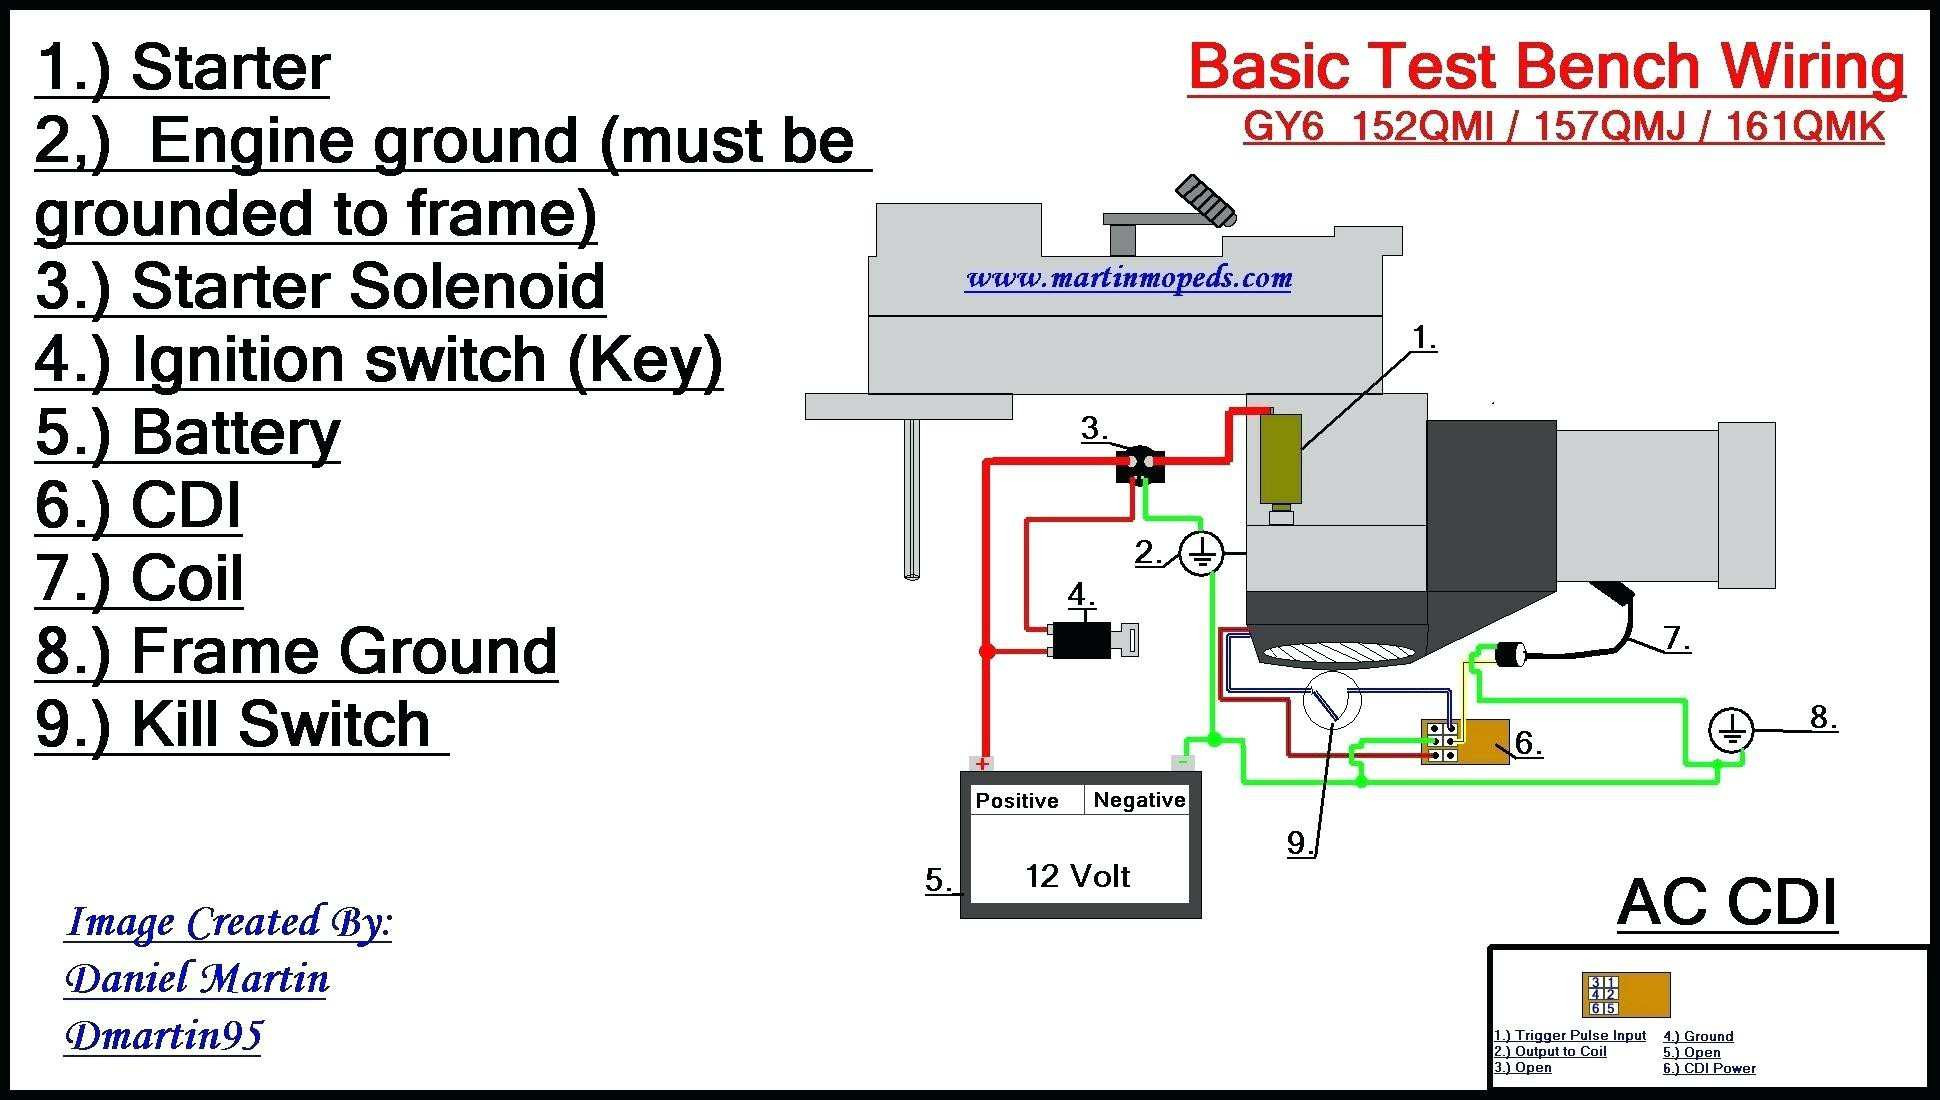 WRG-6653] Relay Wiring Diagram 4 Pole on